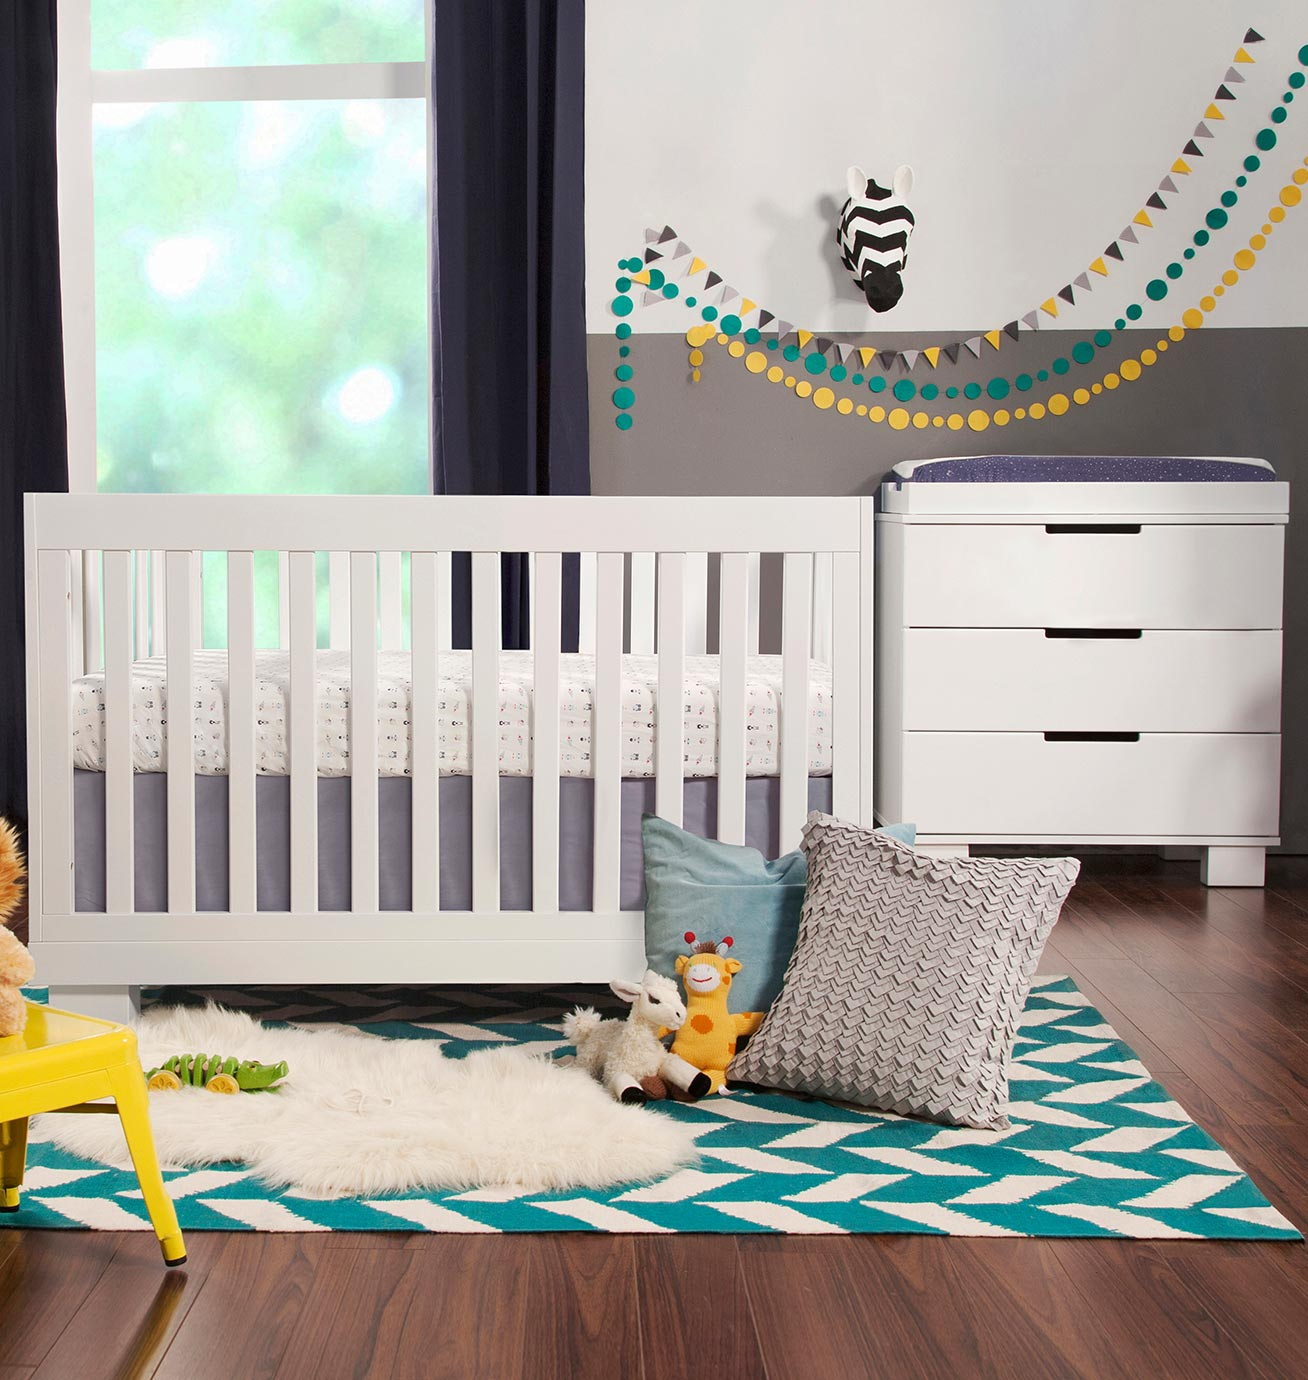 babyletto  piece nursery set  modo in convertible crib and dresserchanger in white free shipping. babyletto  piece nursery set  modo in convertible crib and